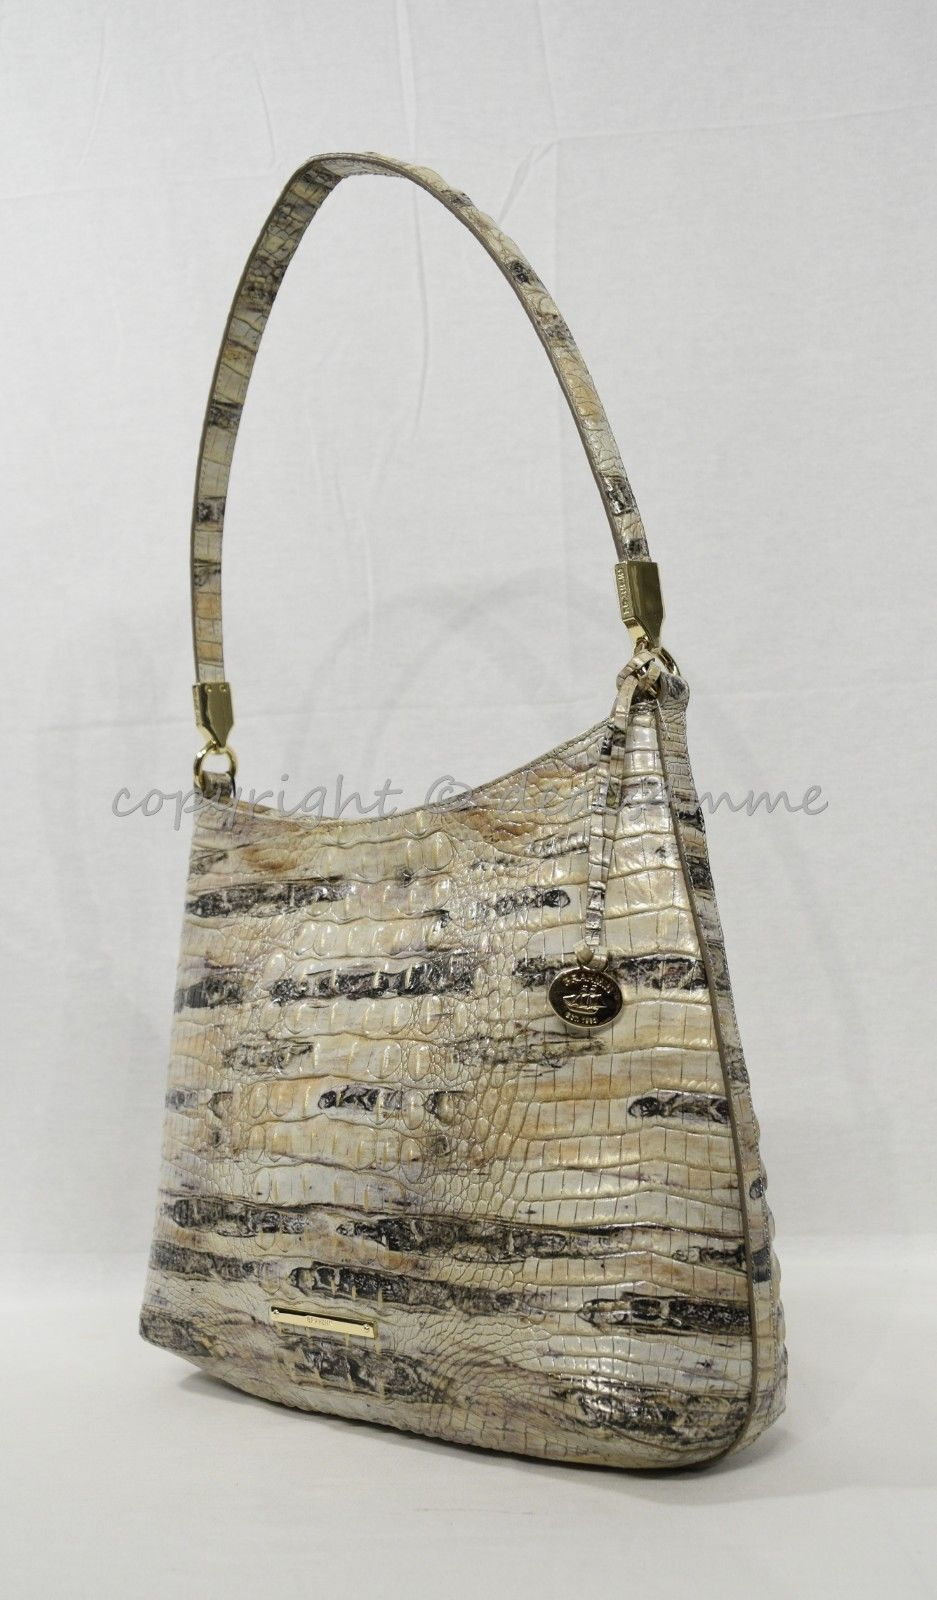 NWT Brahmin Farrah Leather Tote / Shoulder Bag in Sandalwood Melbourne